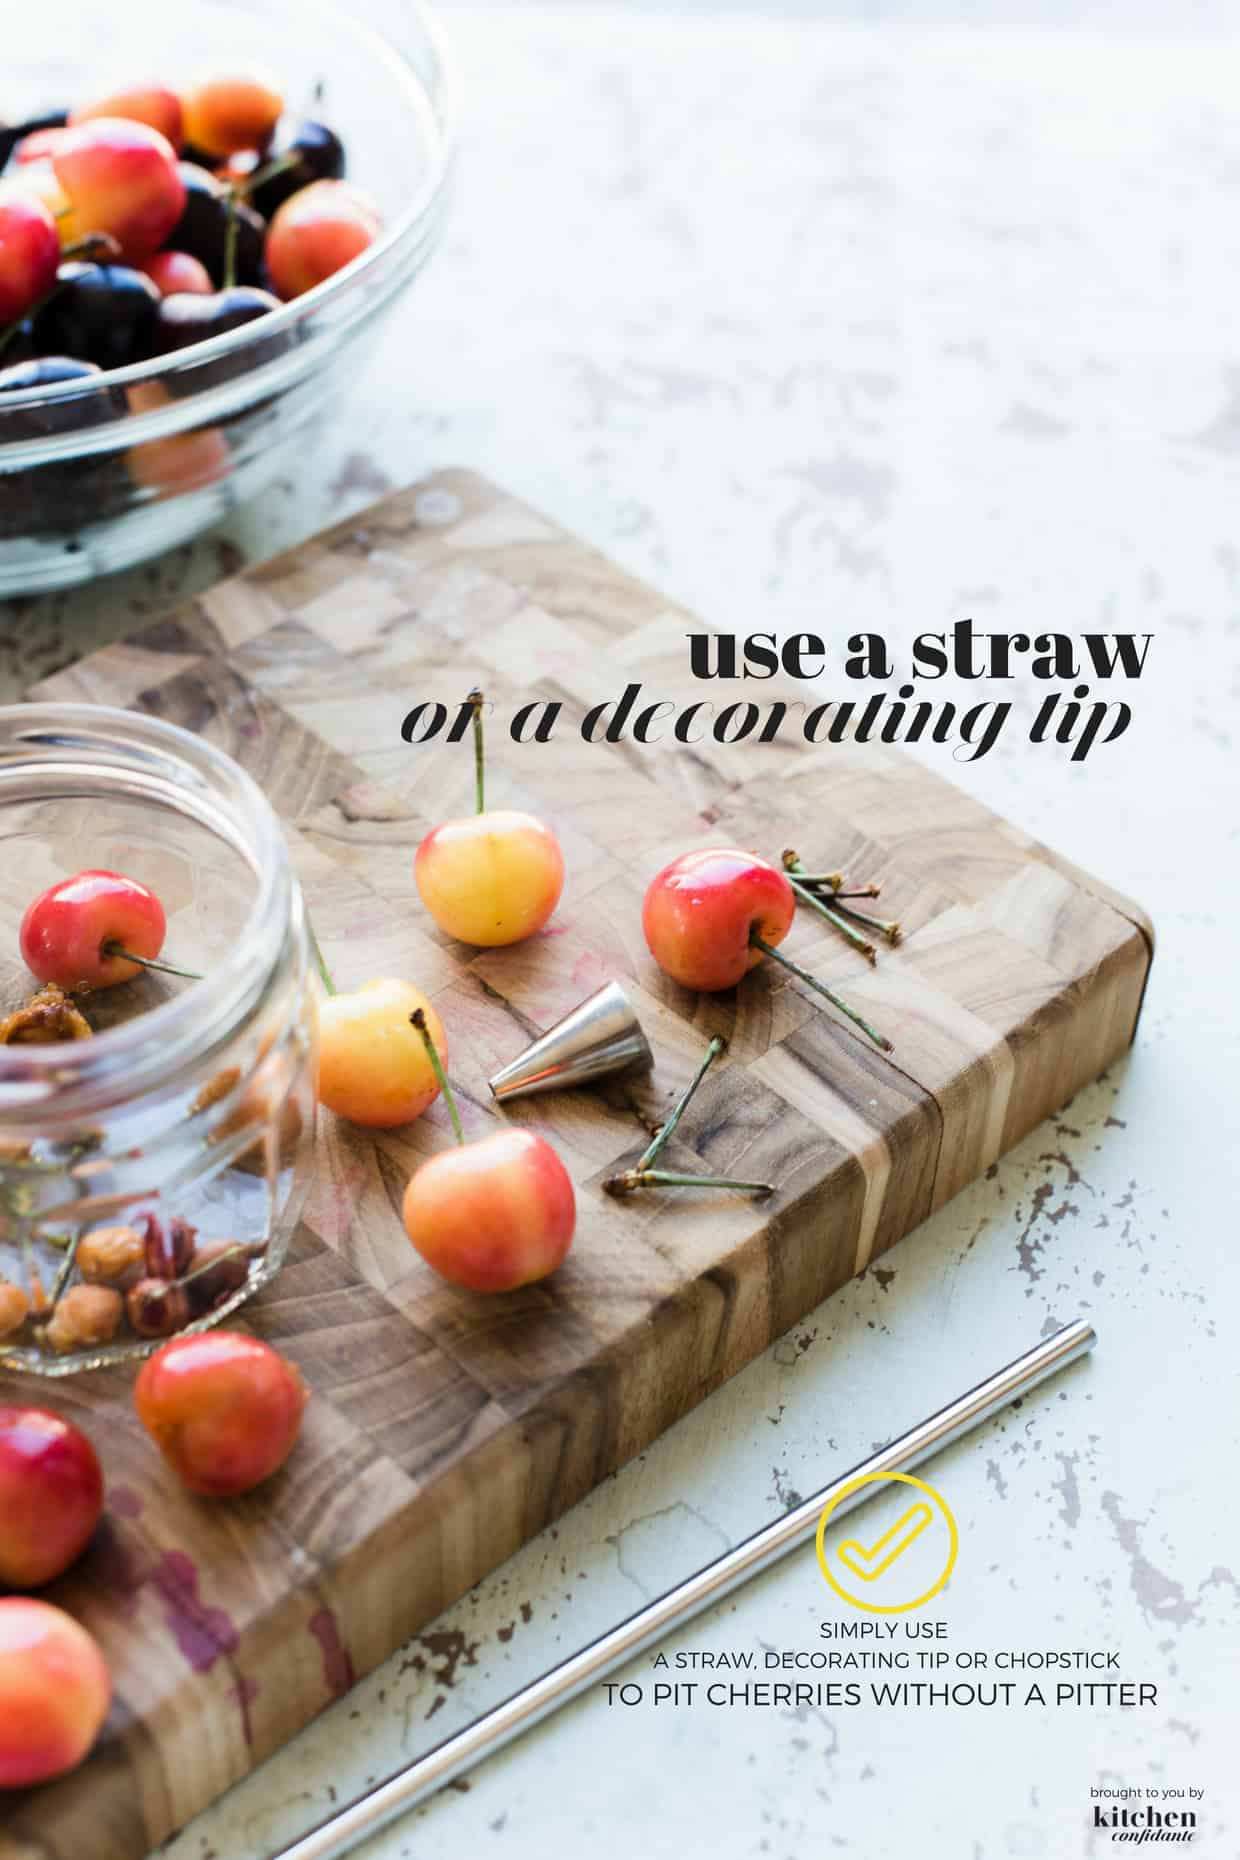 how to pit cherries without a cherry pitter using a straw or decorating tip!